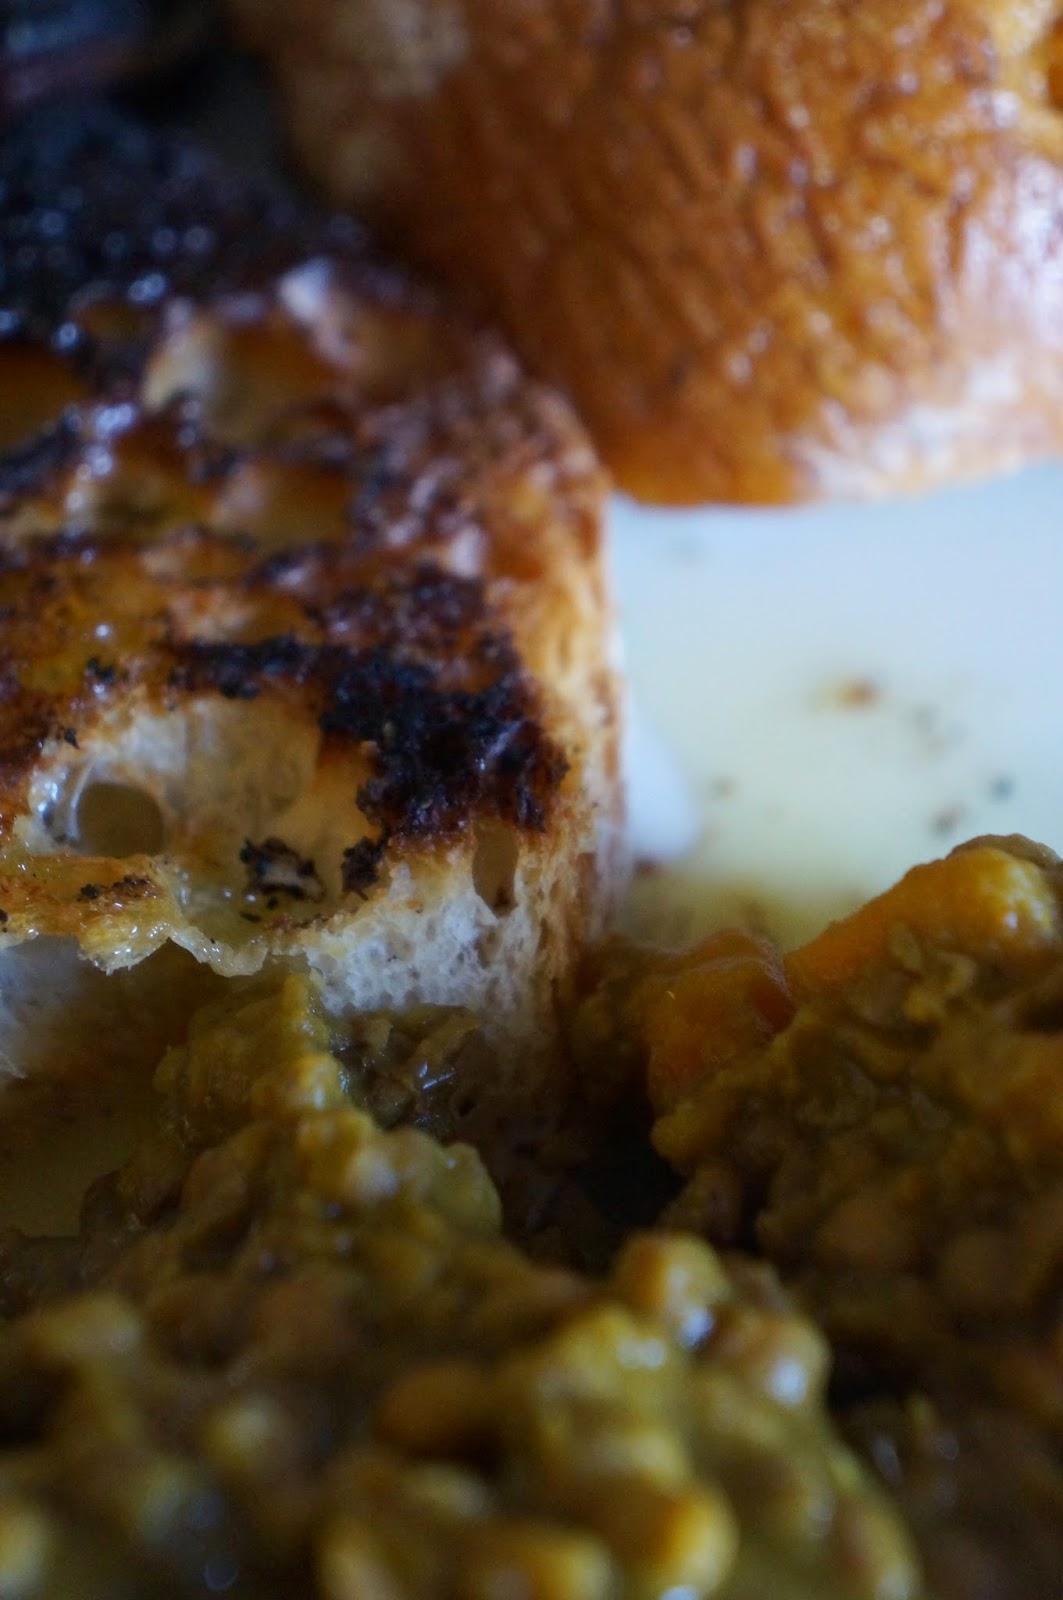 curry lentils and oil and garlic bruschetta